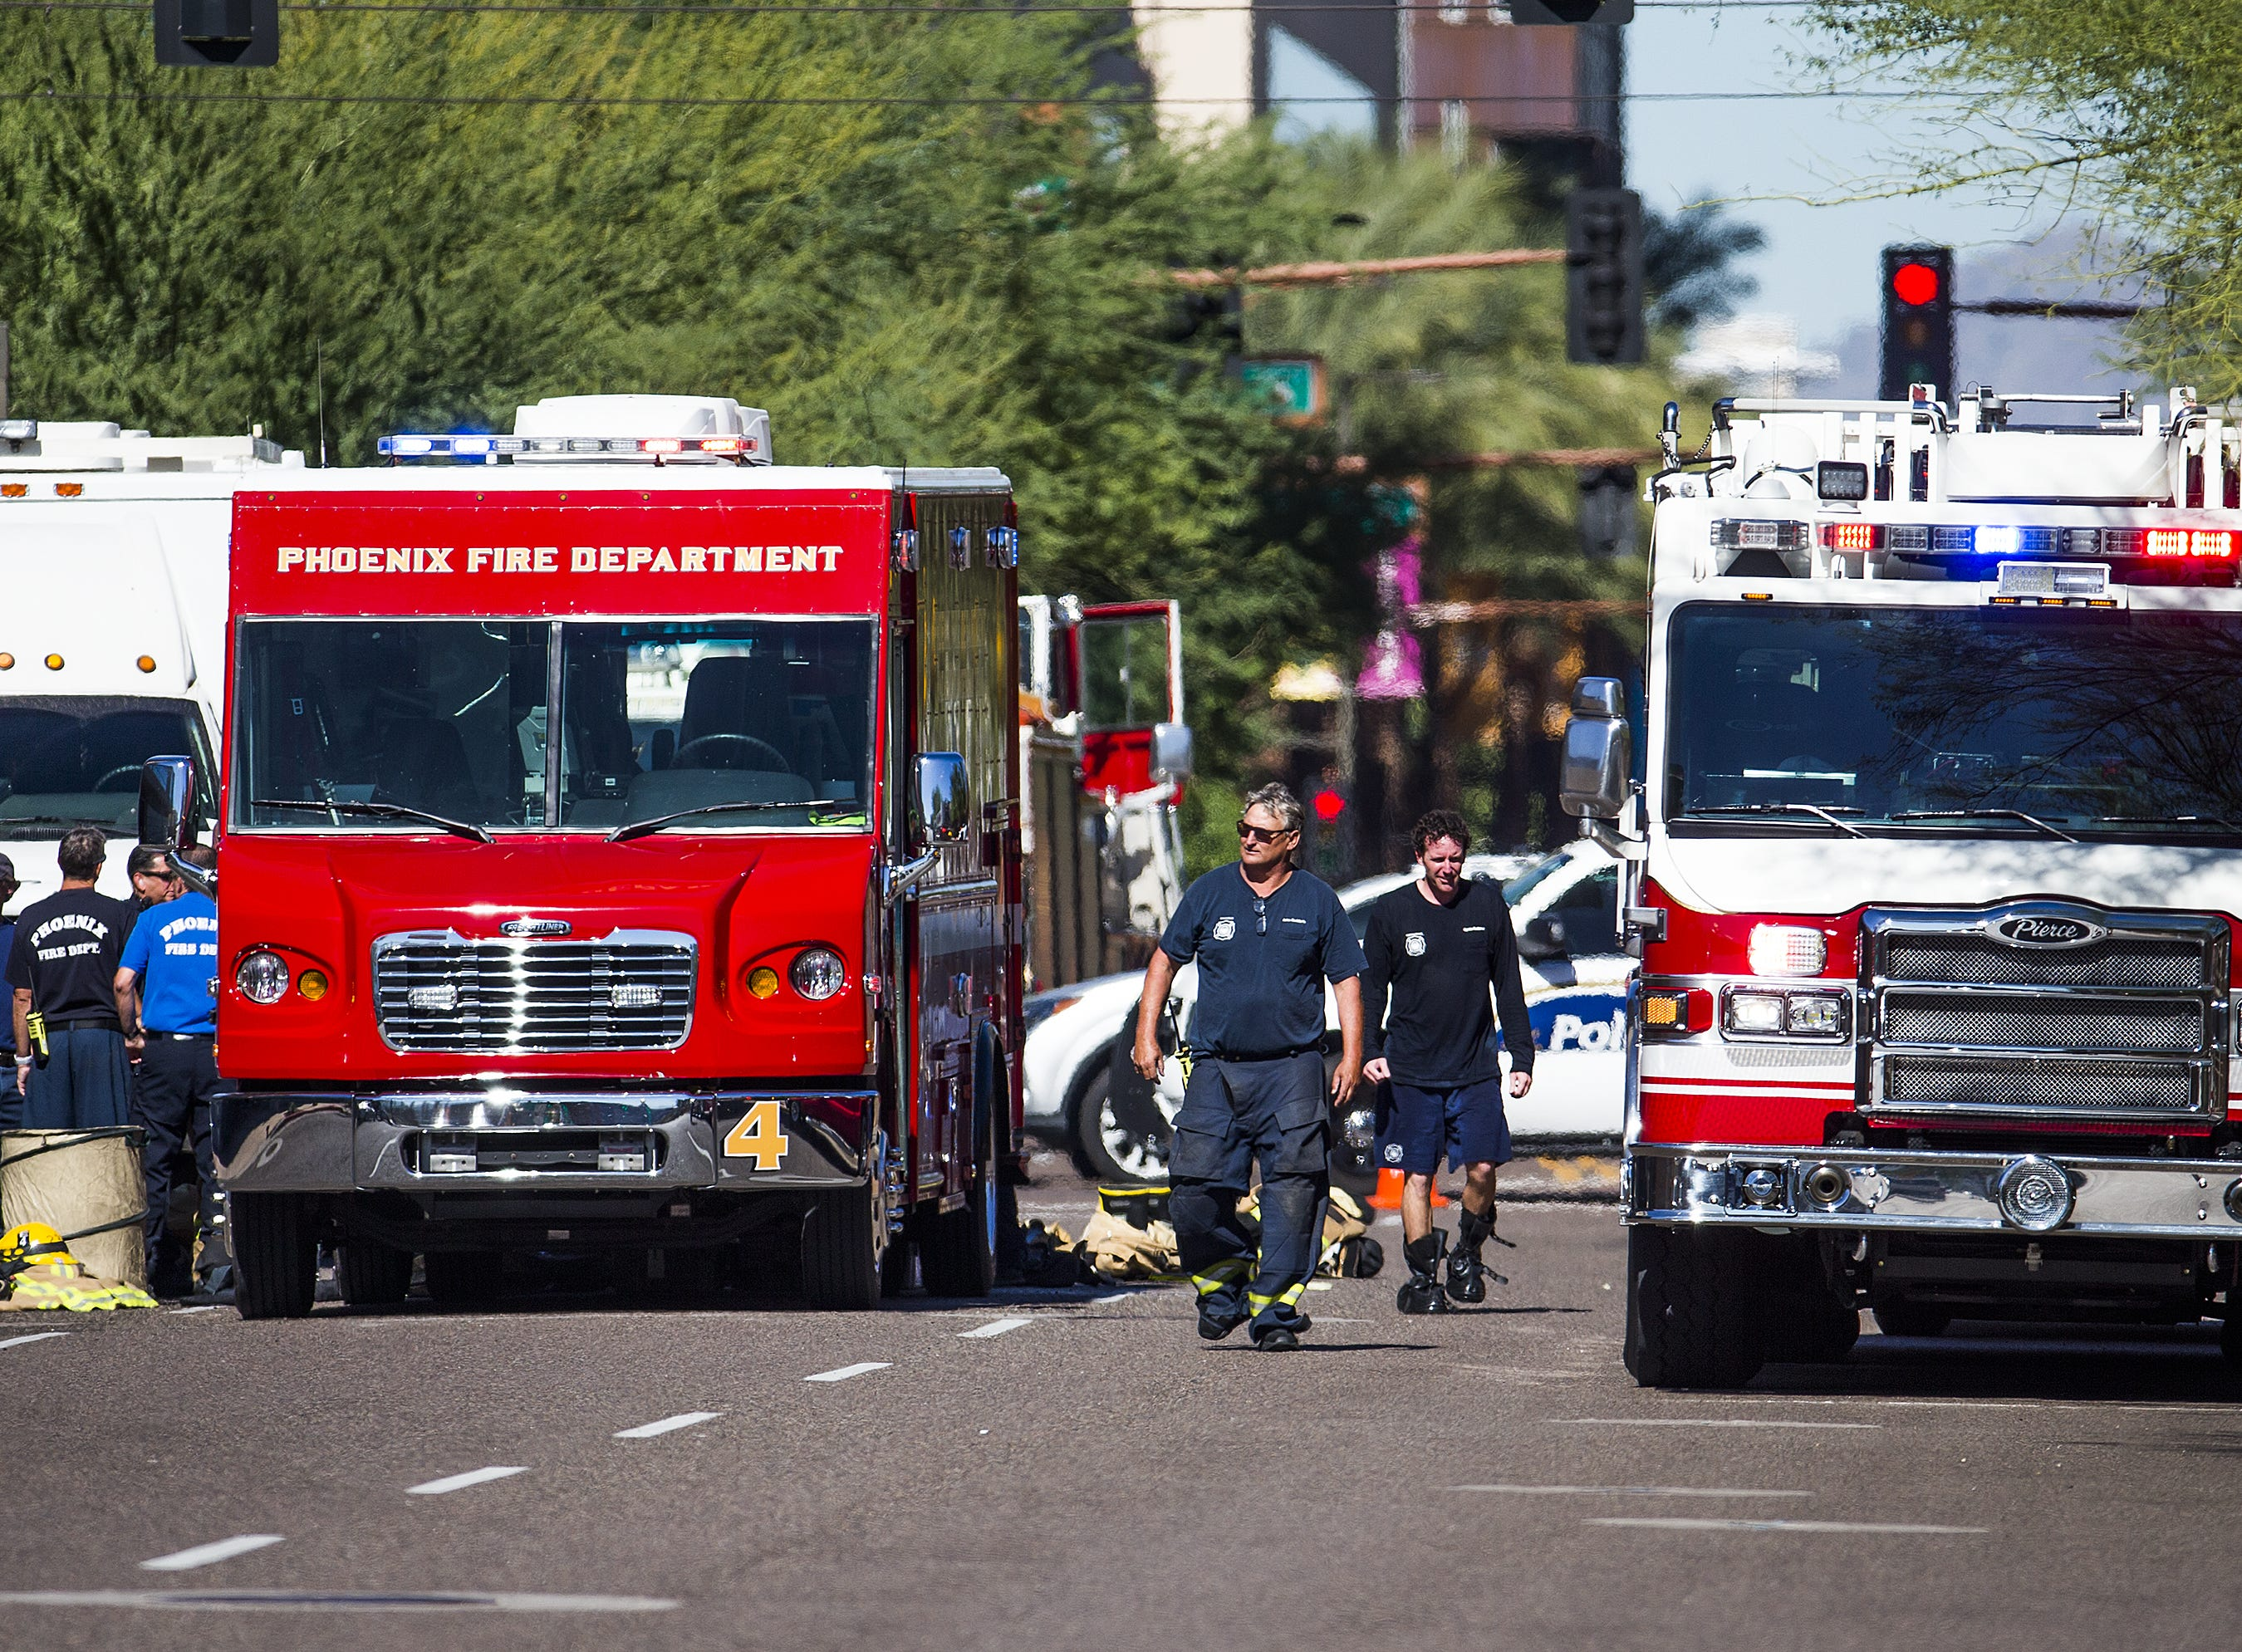 Phoenix firefighters and emergency personnel respond to reports of a white powder substance found in a downtown building, Friday, November 2, 2018. This view is looking north on 3rd Street at Washington.